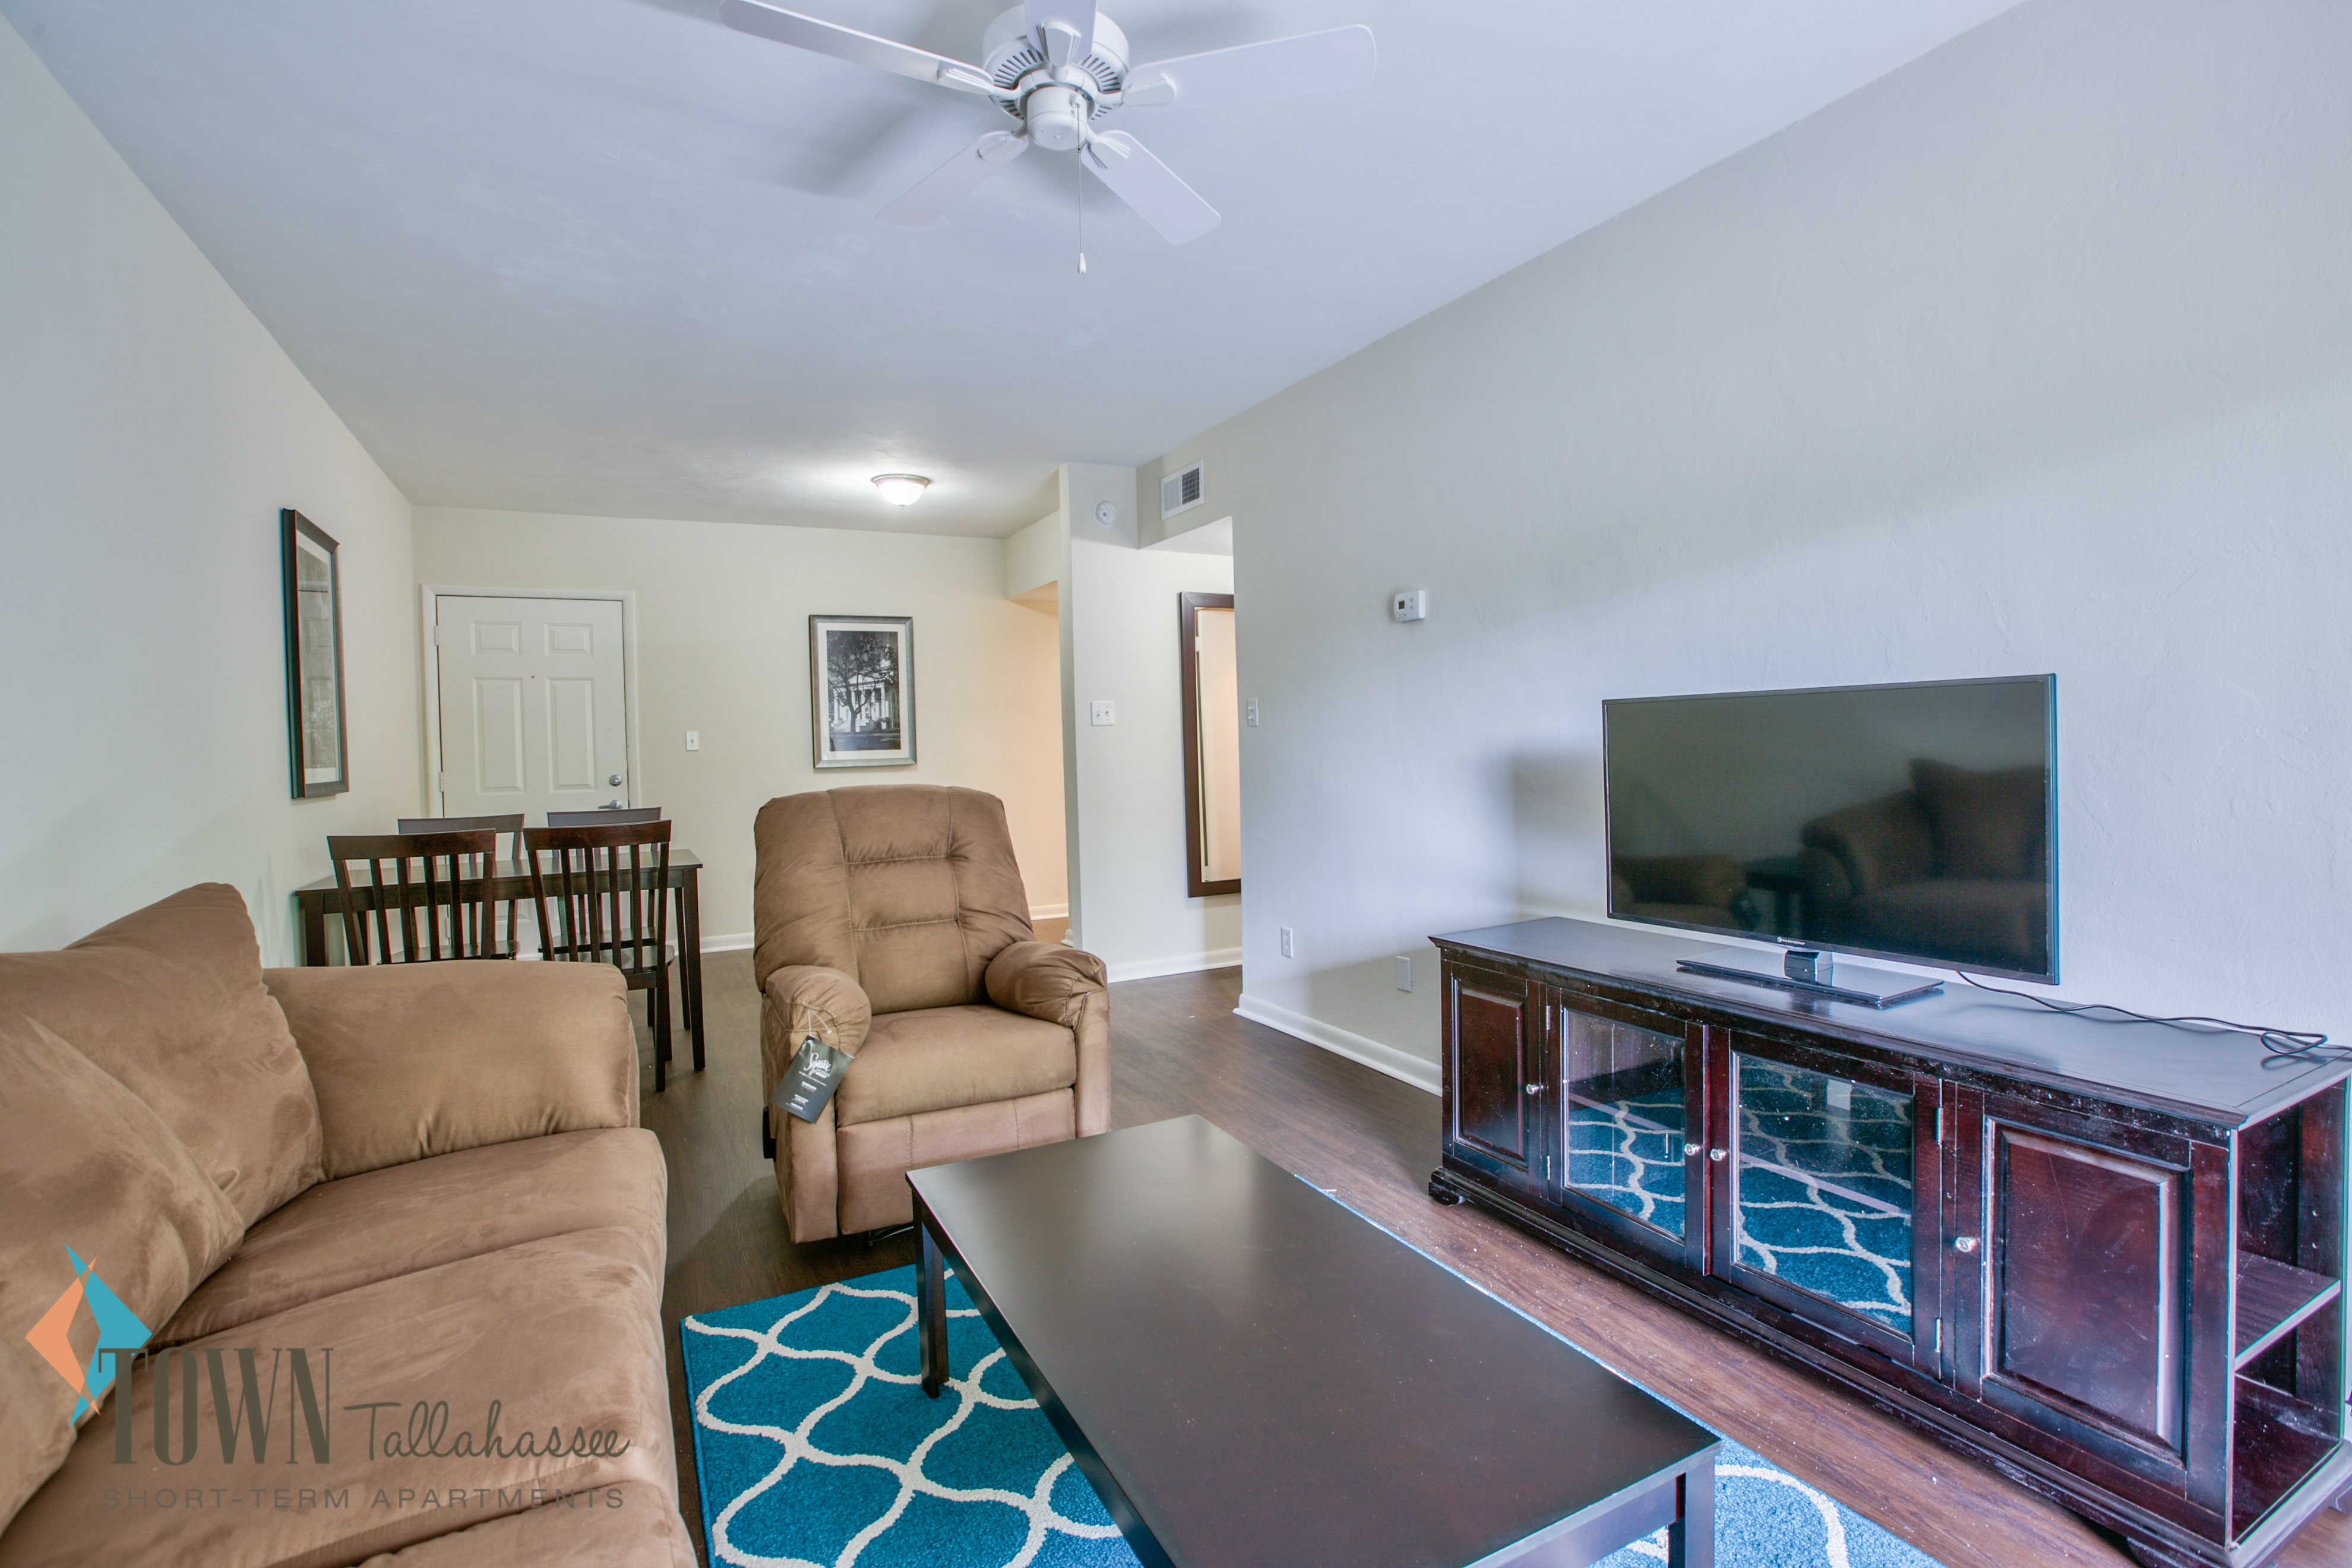 Town Tallahassee Short Term Rental Core Property Management